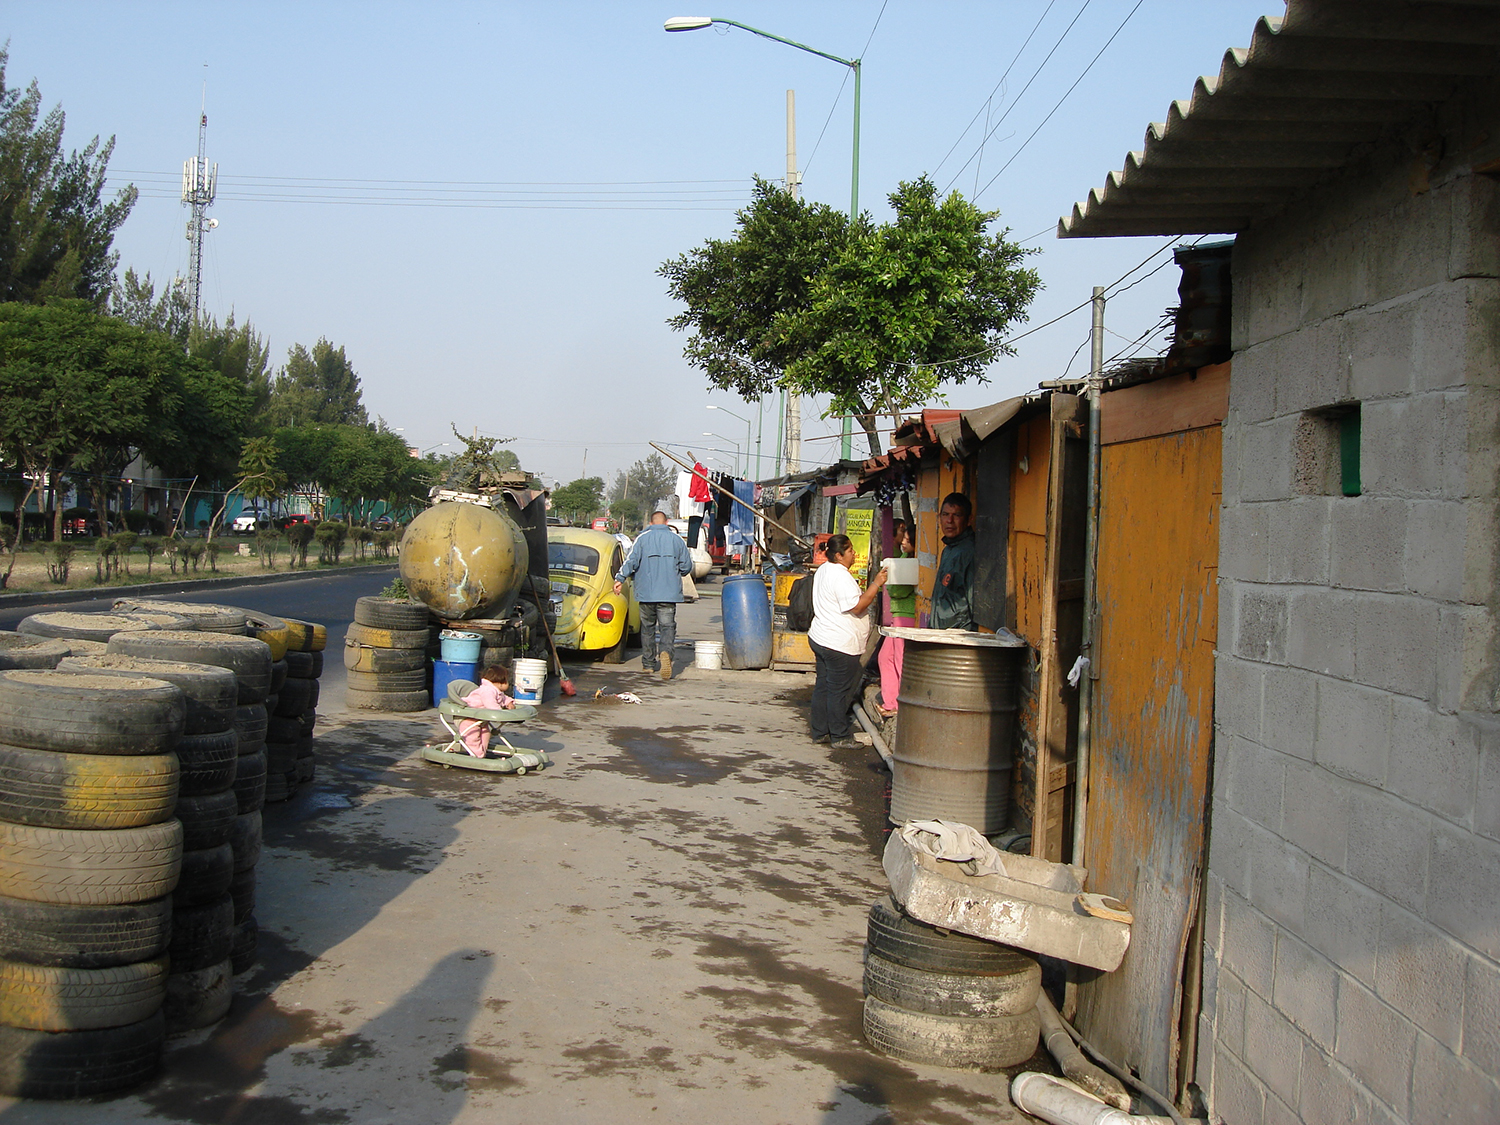 A scene from Iztapalapa